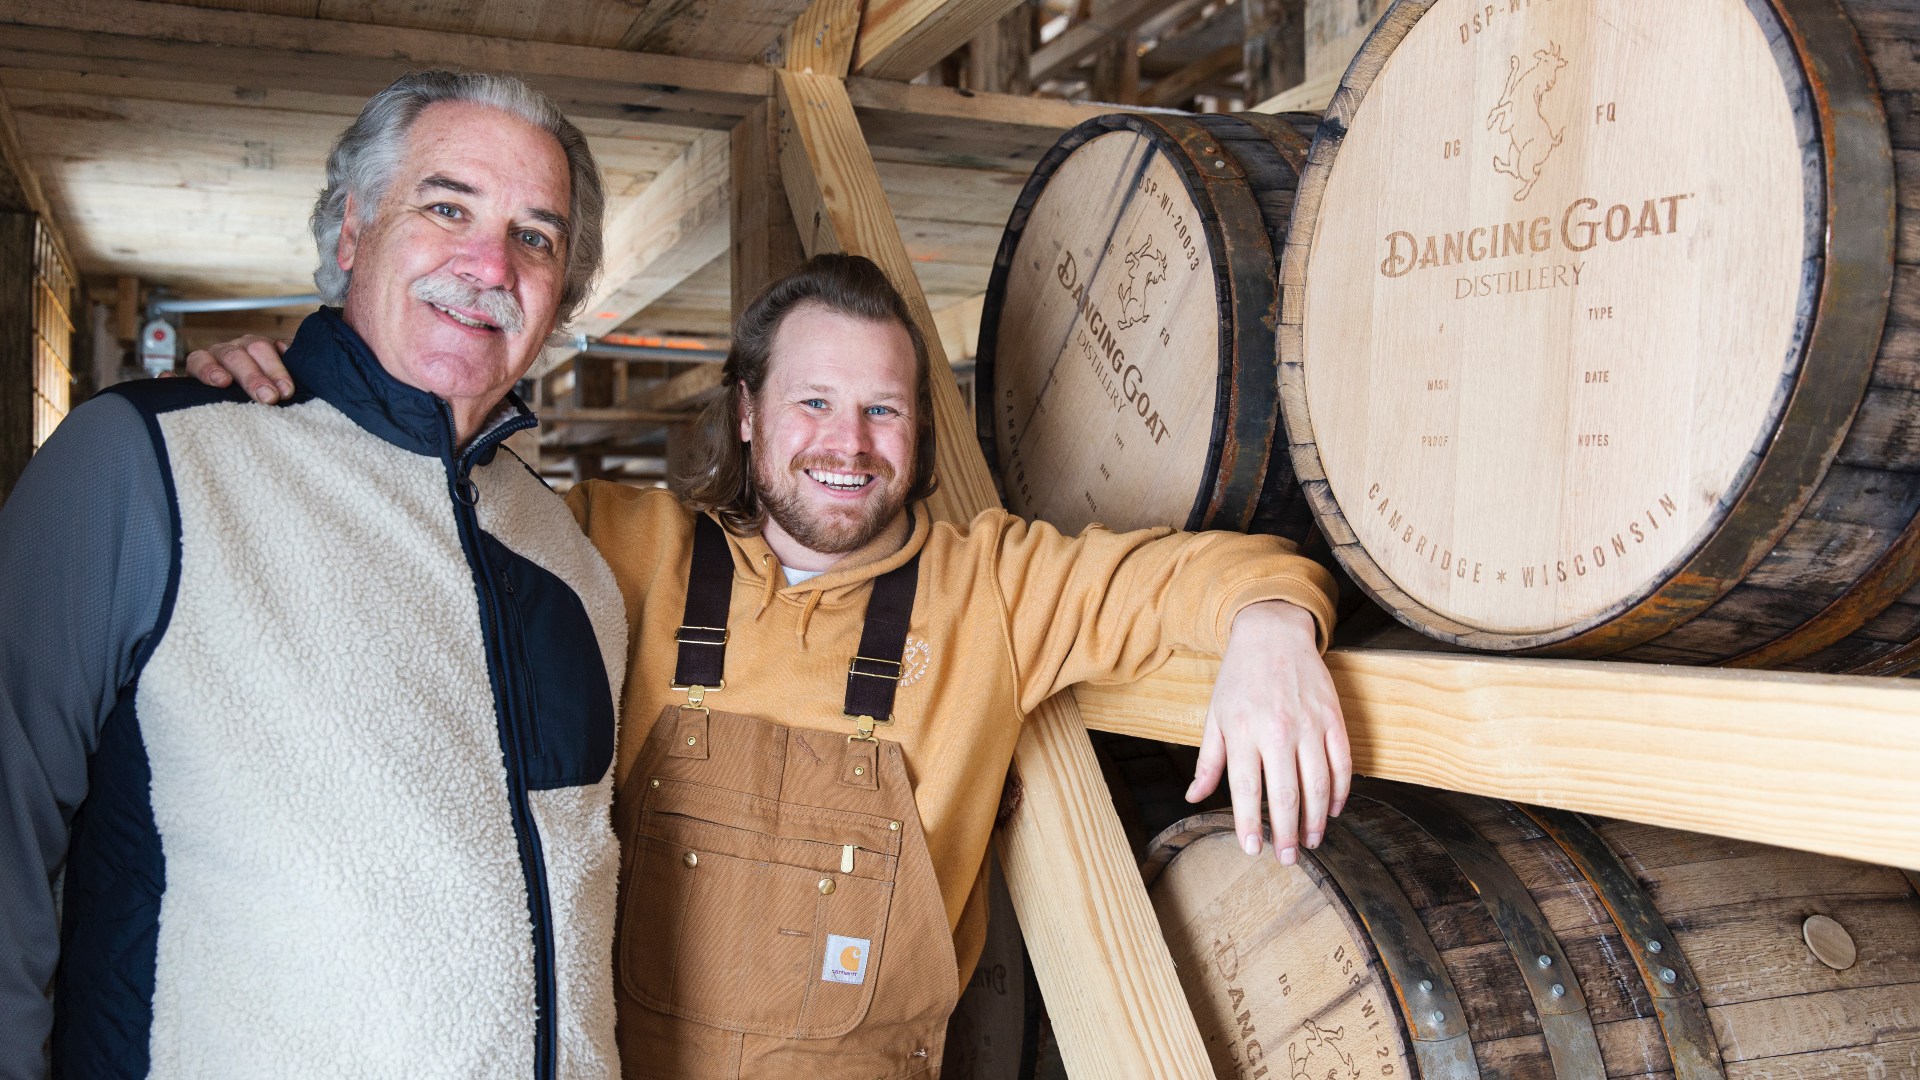 Two men stand in front of distilling barrels.